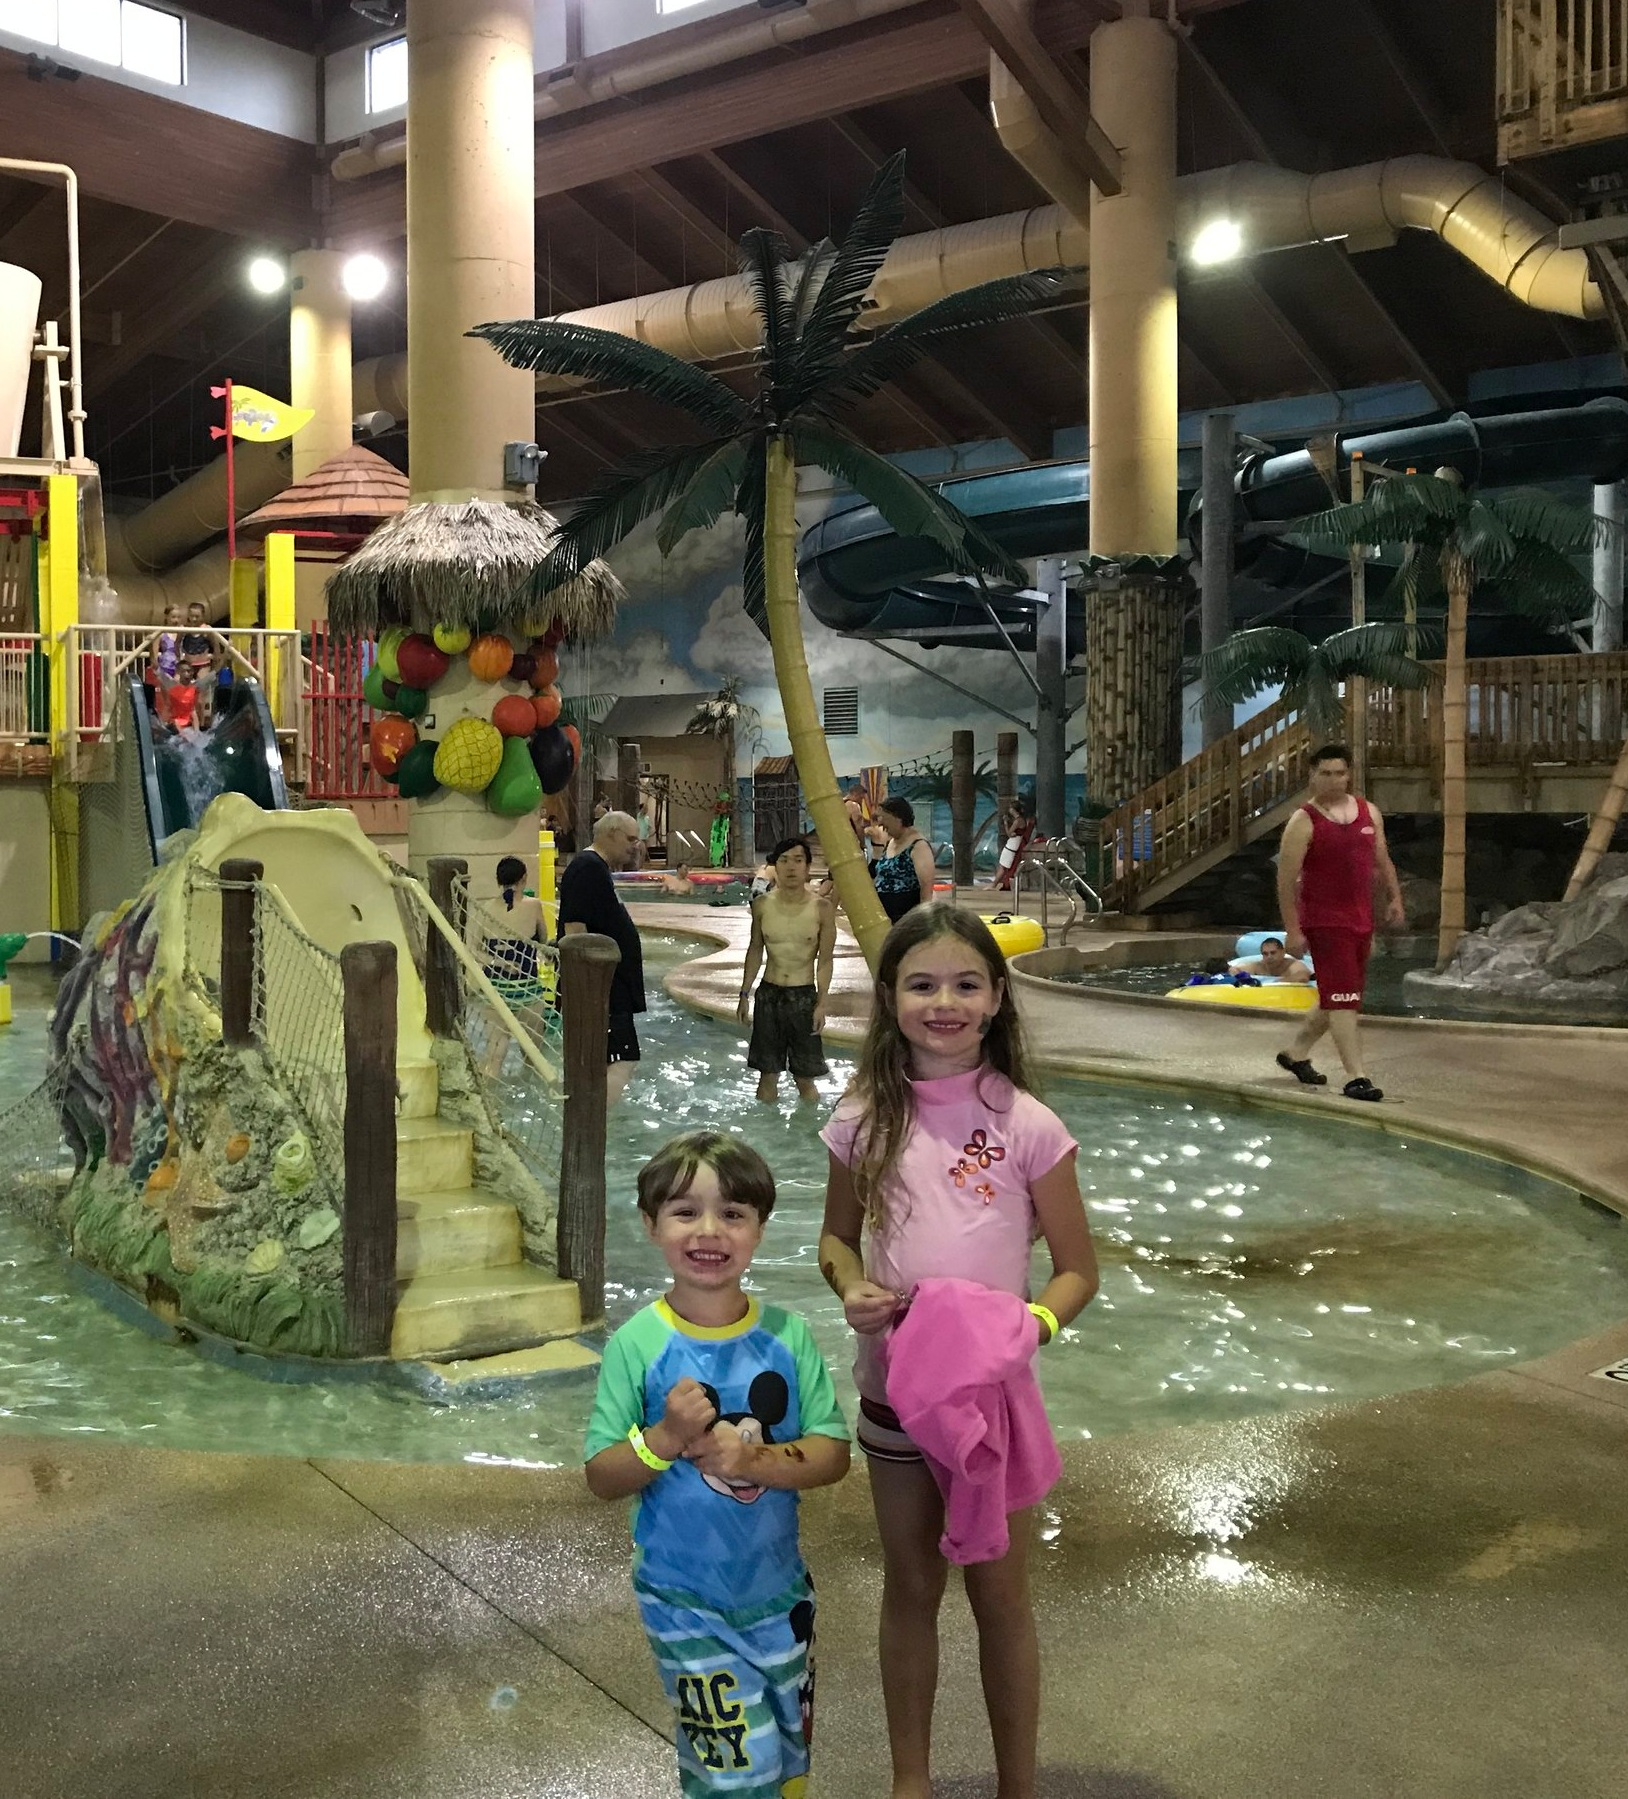 """Such a nice thing you do for families! The kids loved the water park! Everyone was nice and it was a very pleasant place to stay! Dinner was delicious and much appreciated as well. Thank you again for the entire experience - much appreciated!"" -"